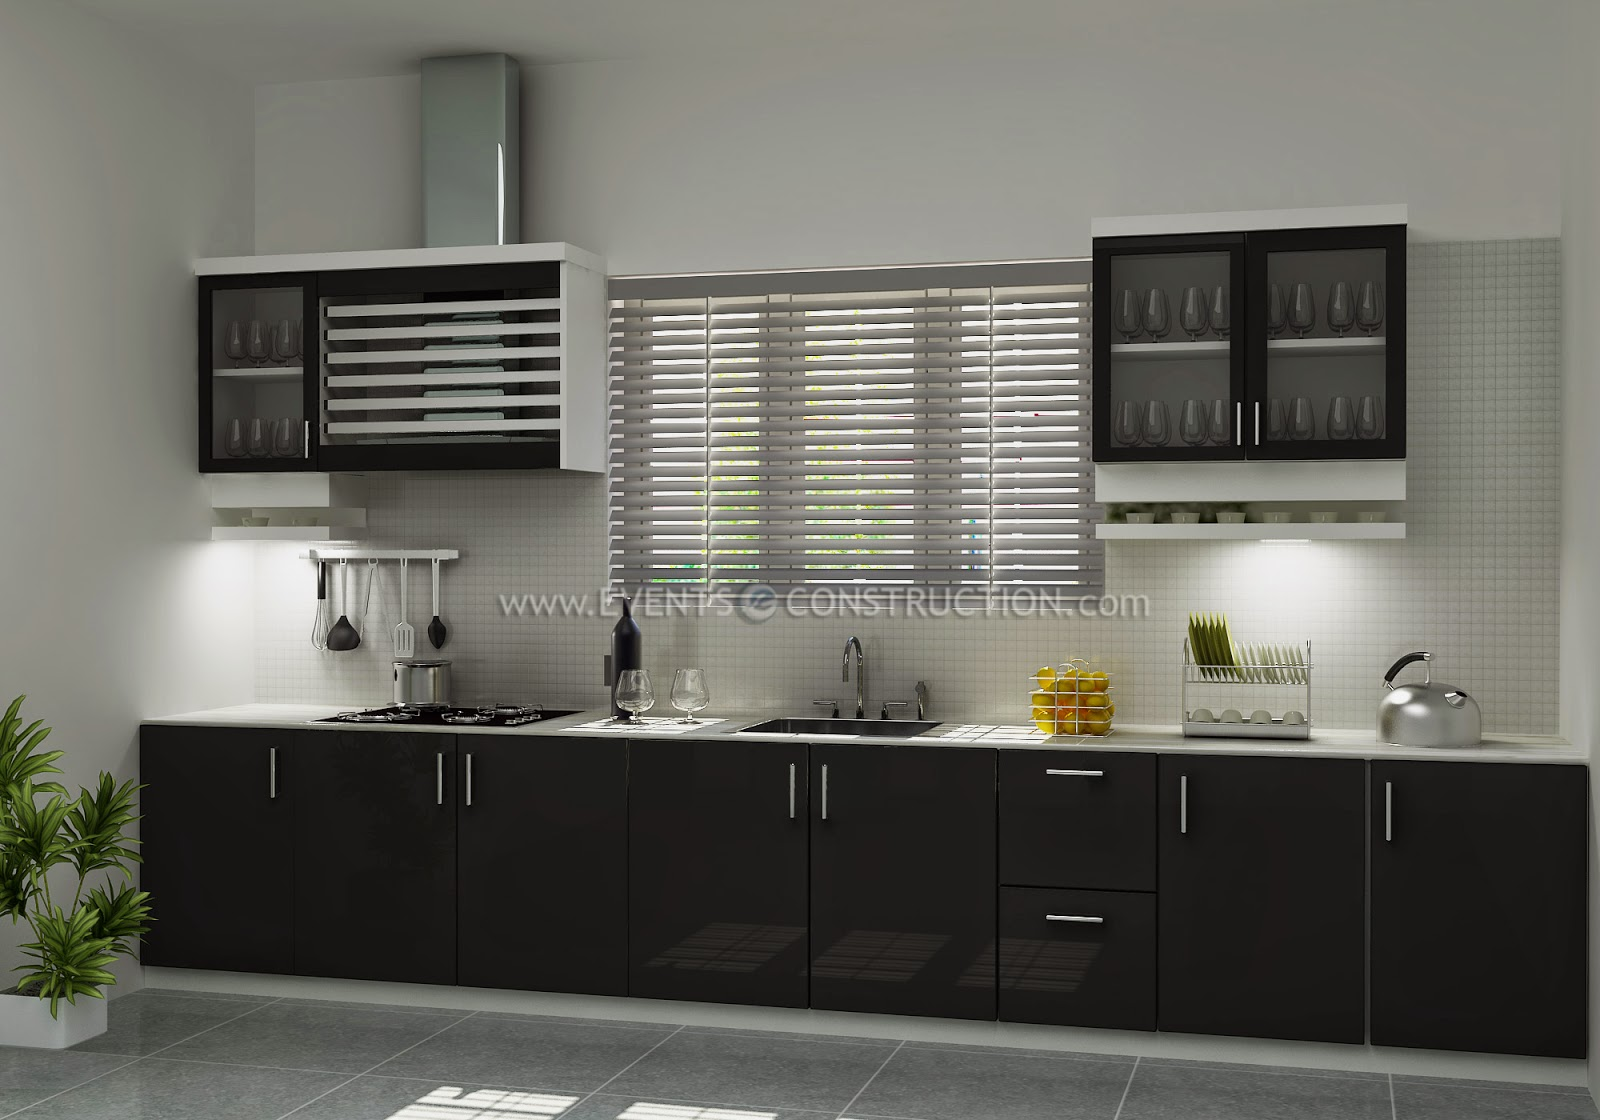 Evens Construction Pvt Ltd Simple And Small Kerala